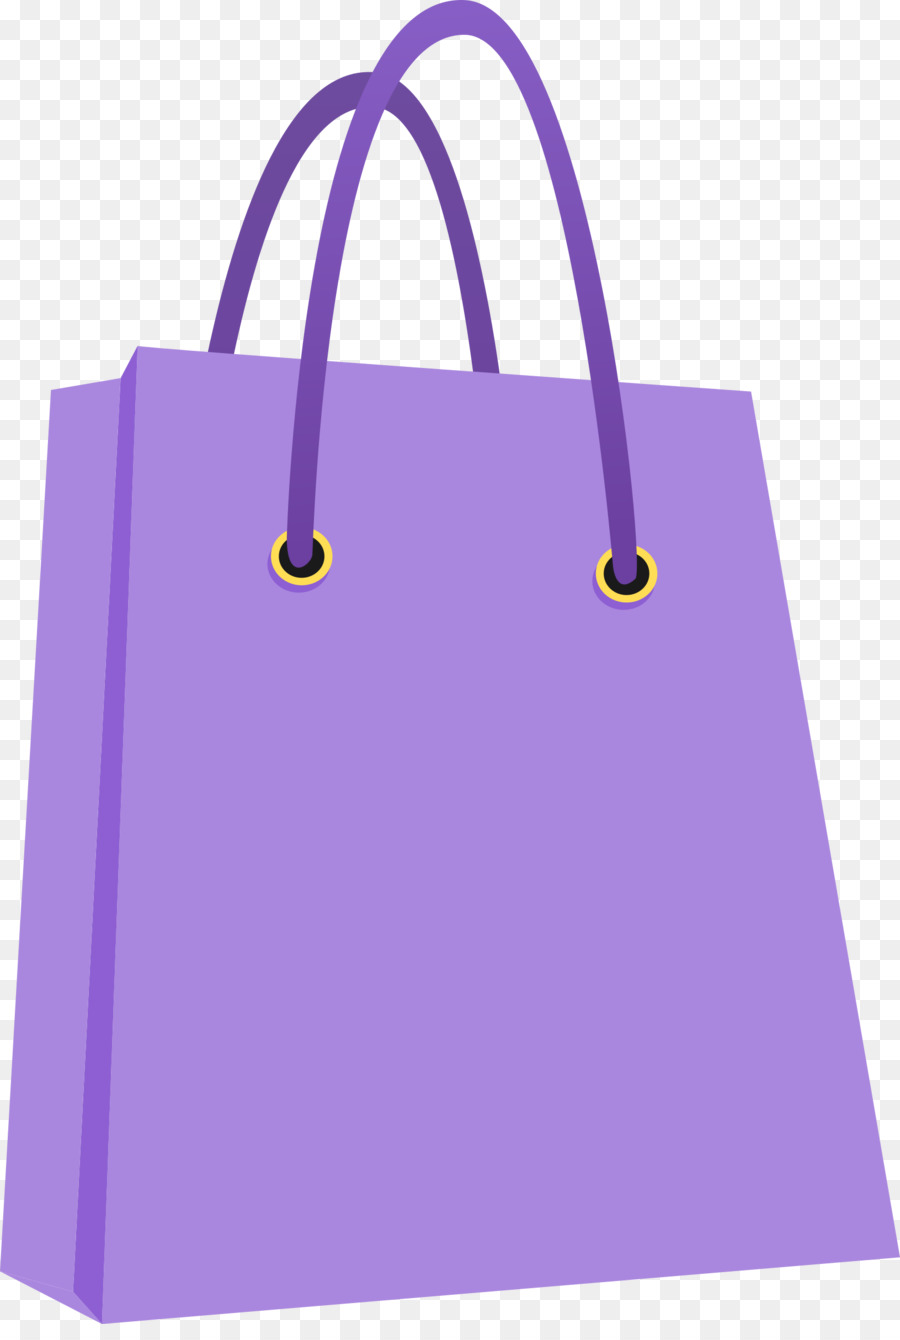 Shopping bags trolleys clip. Bag clipart tote bag